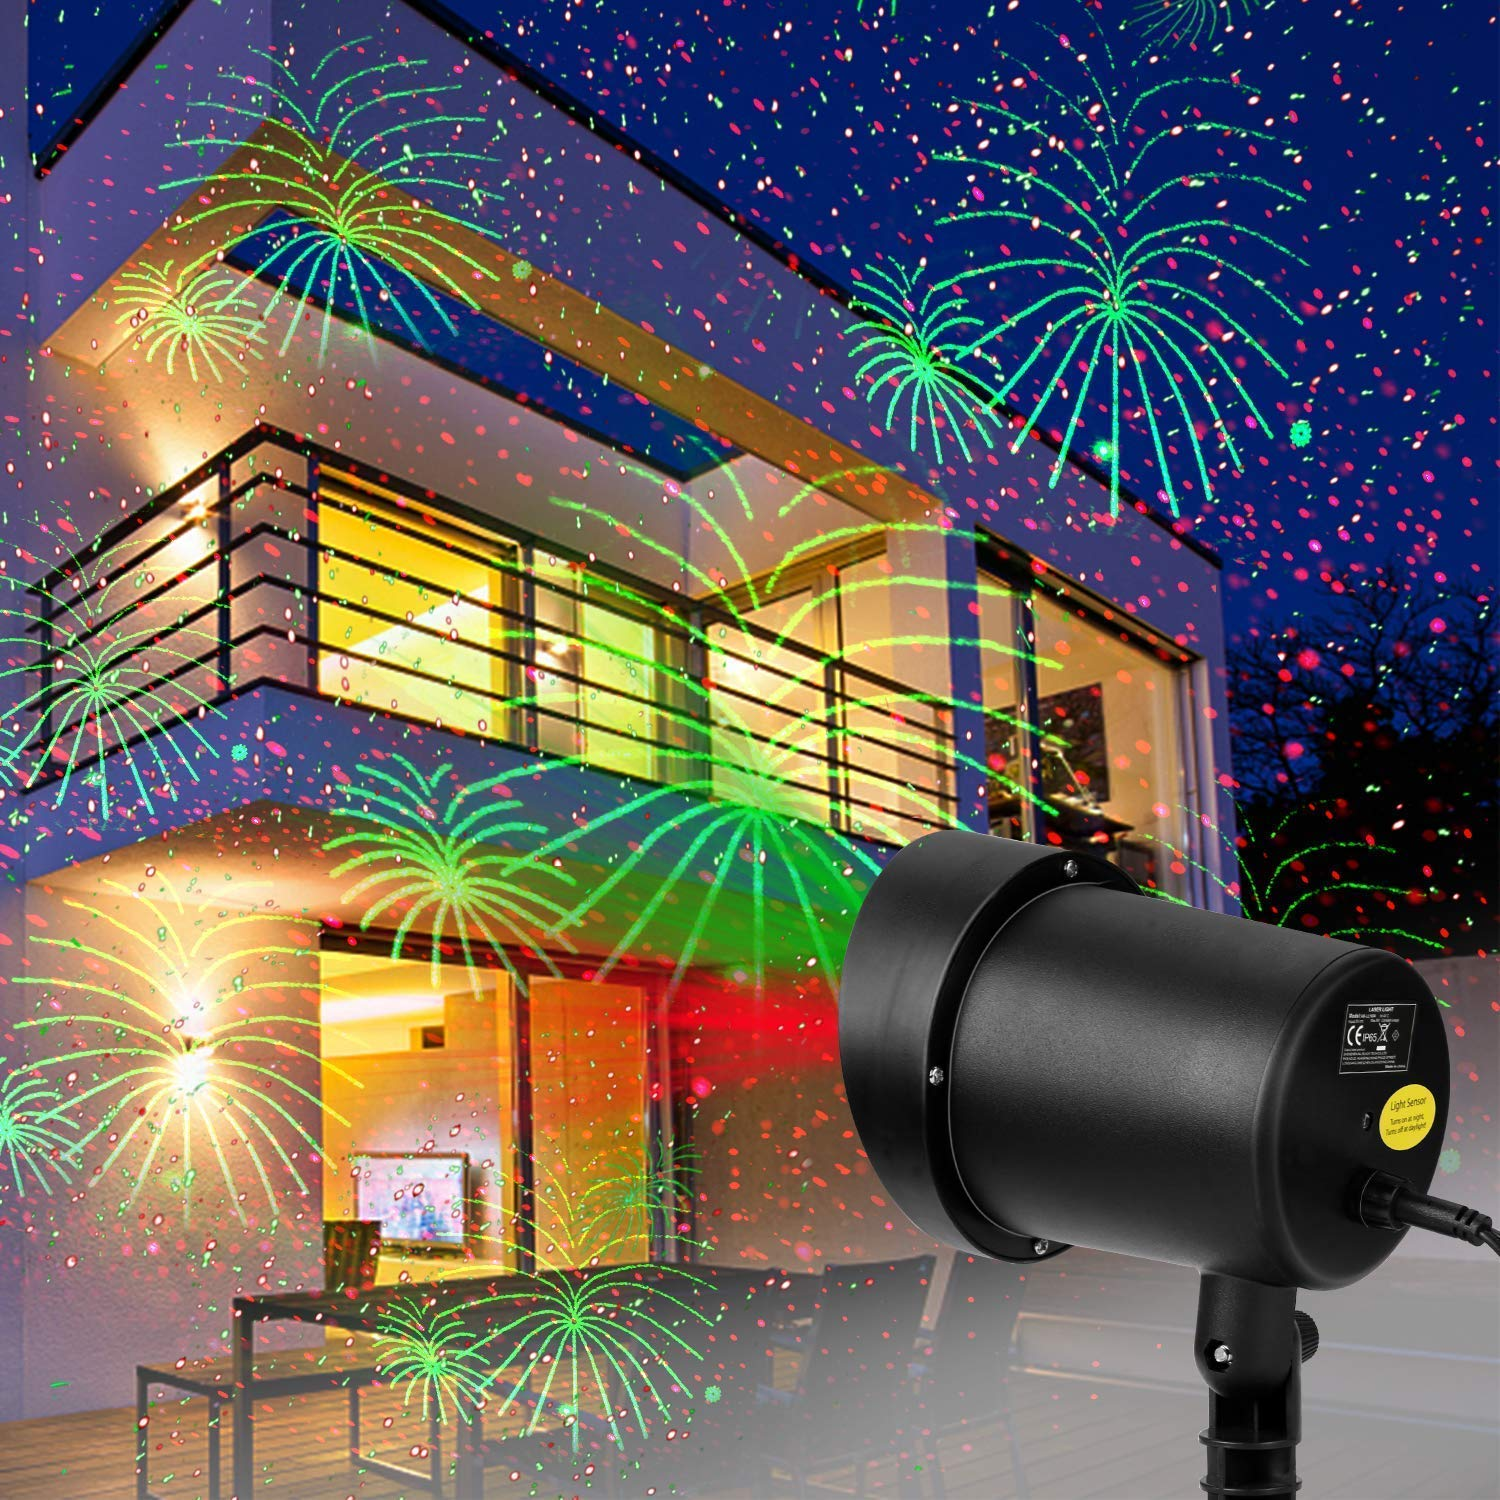 Weeding Party Decorative Fireworks Laser Lights Outdoor,Waterproof Motion Fireworks Lights Show for Theme Party, Wedding, Night Club Celebration Holiday Decorations